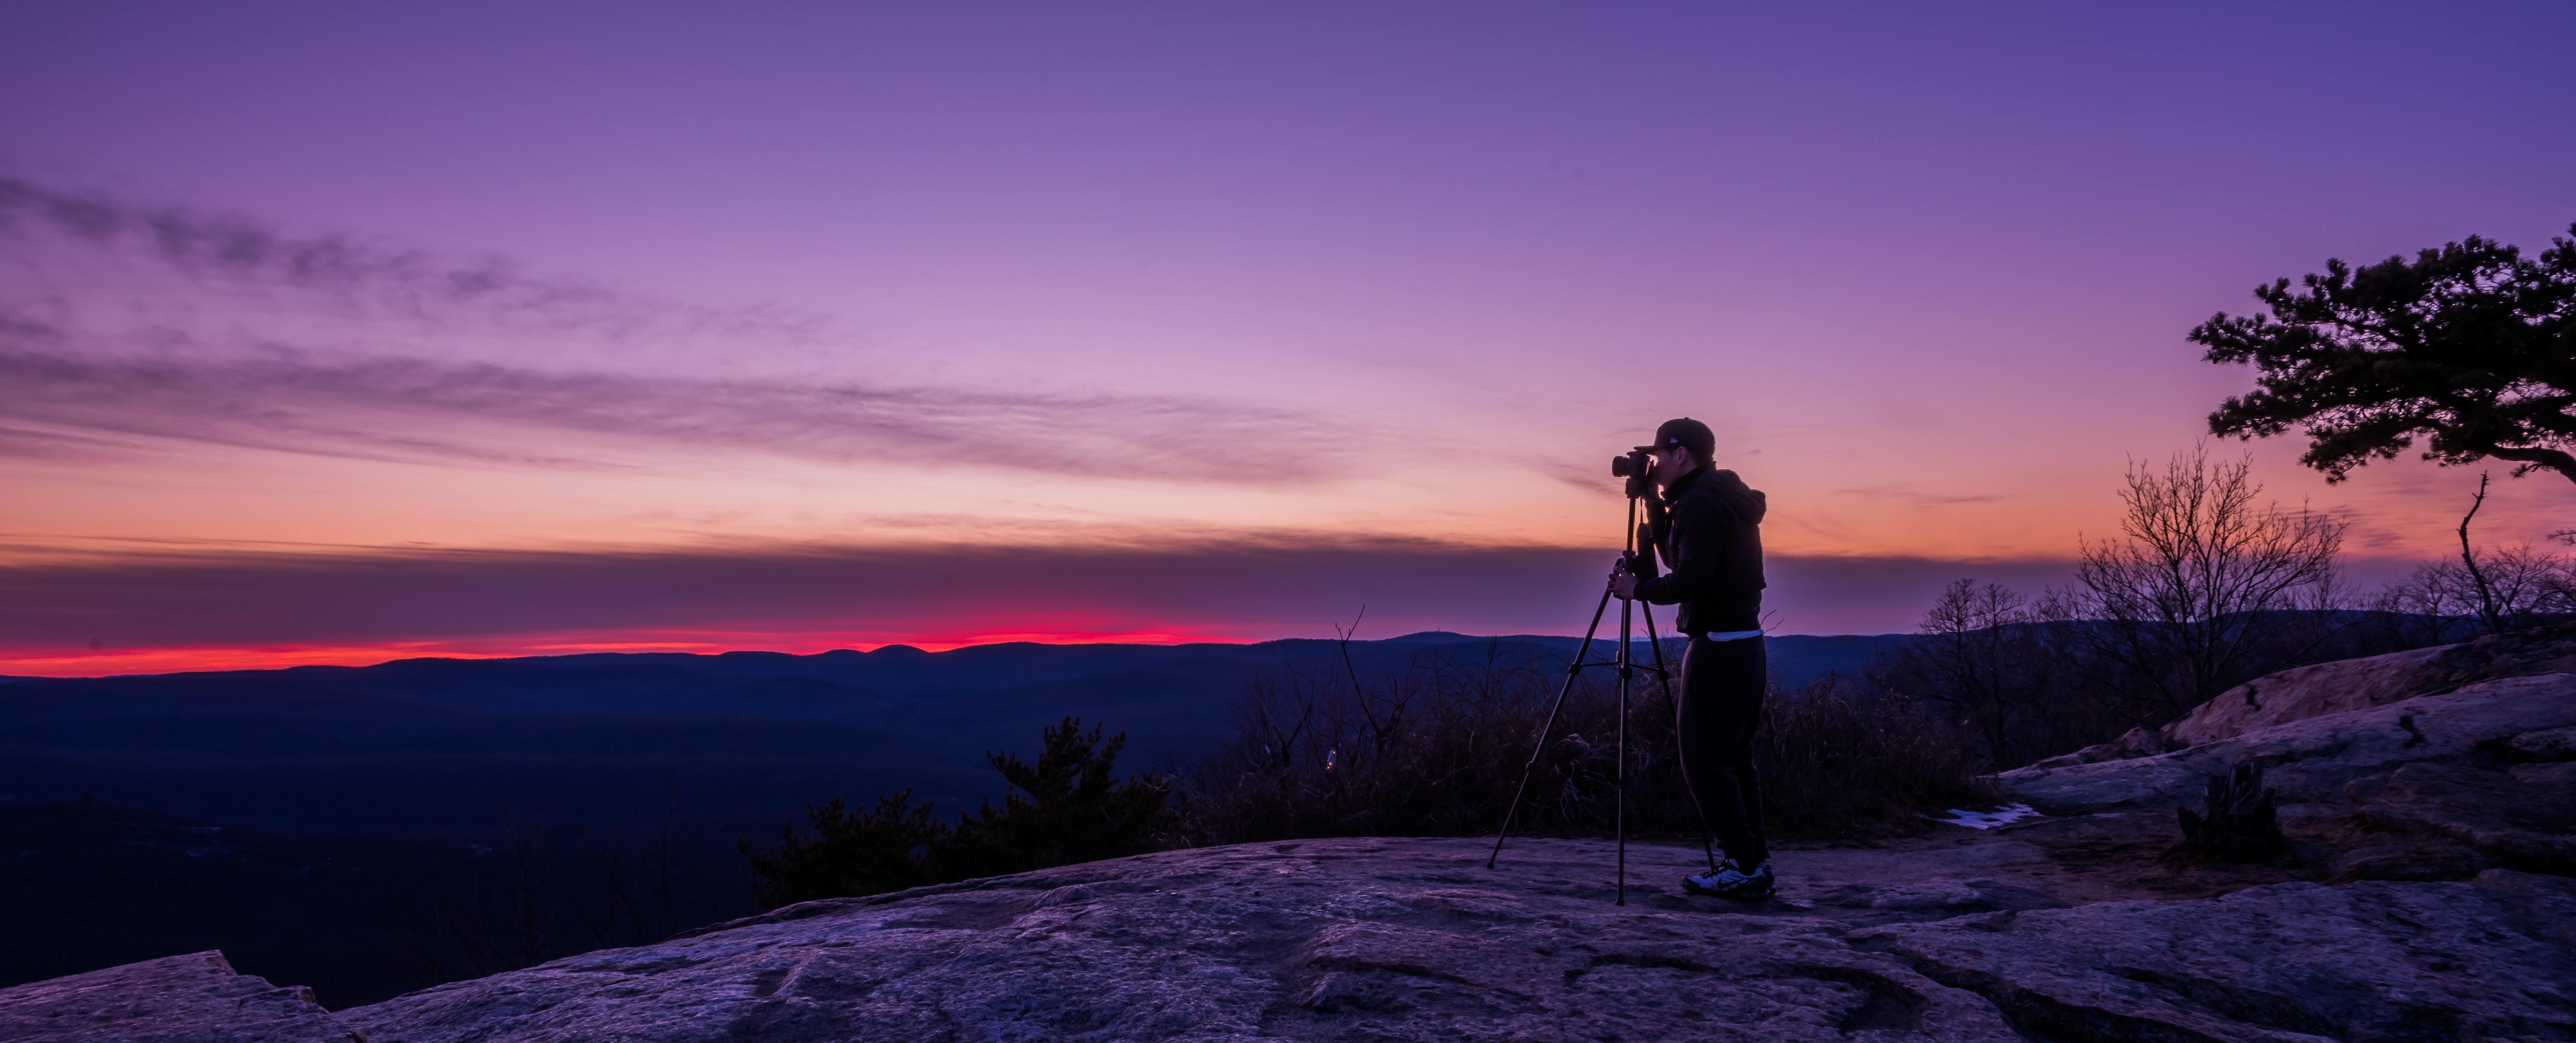 man using tripod for photography at sunset